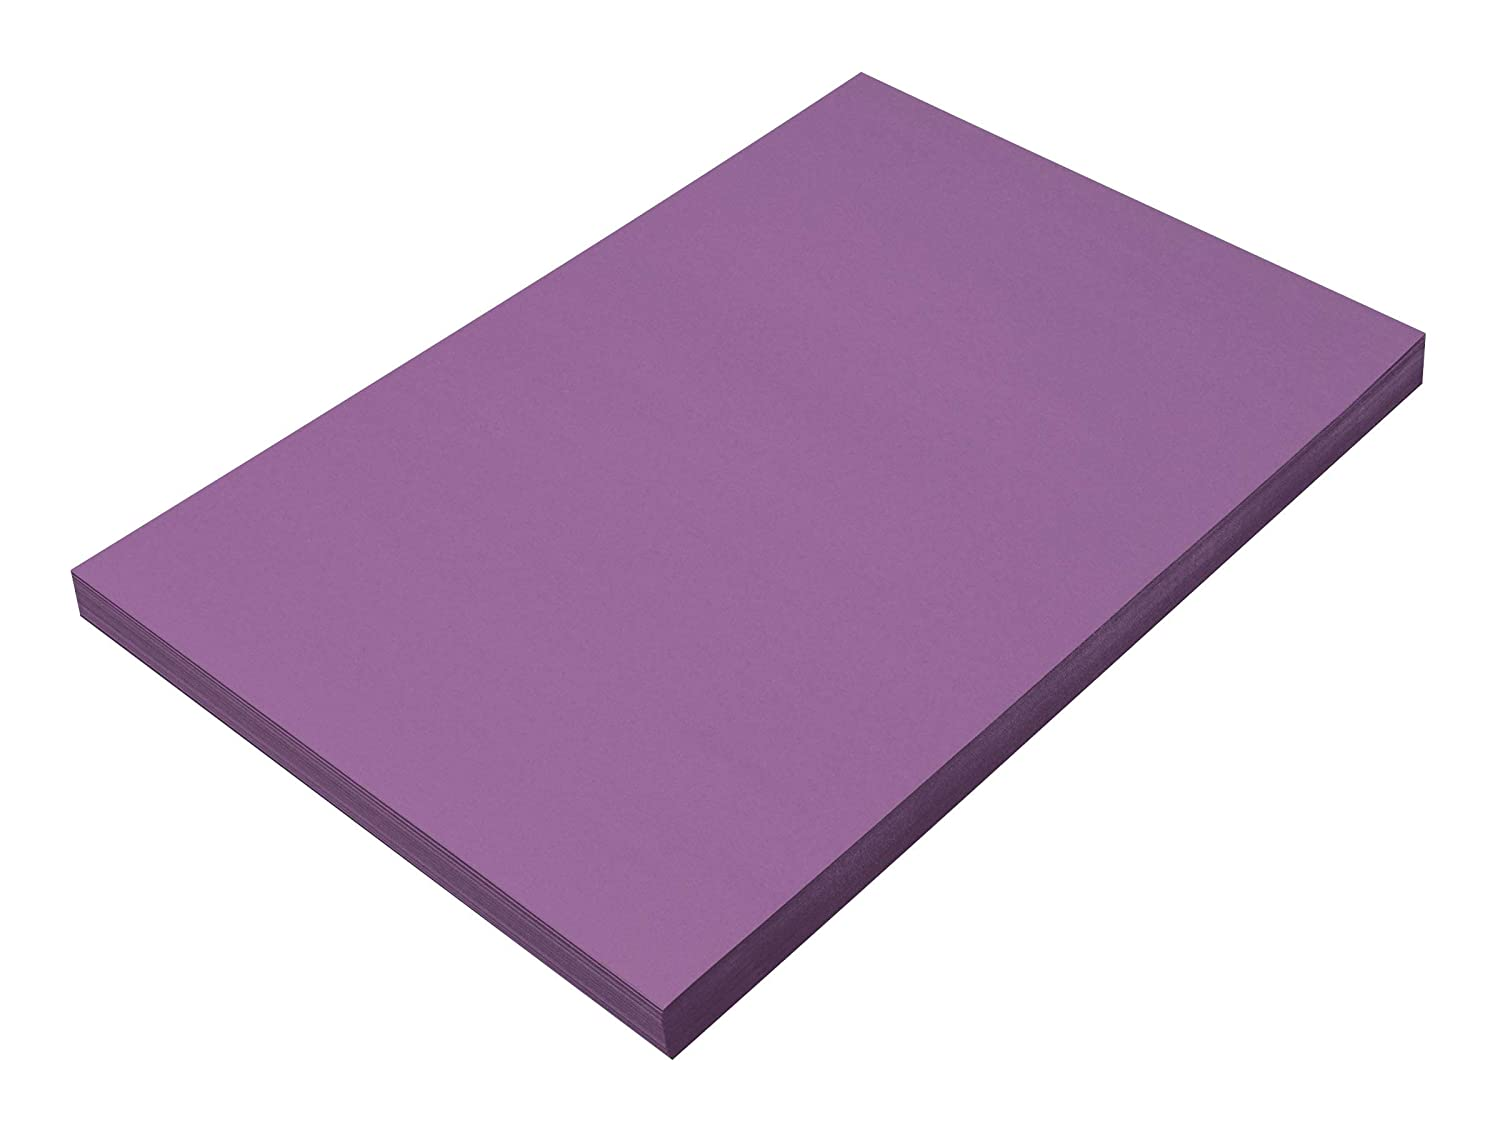 100 Sheets SunWorks Construction Paper 12 x 18 Red